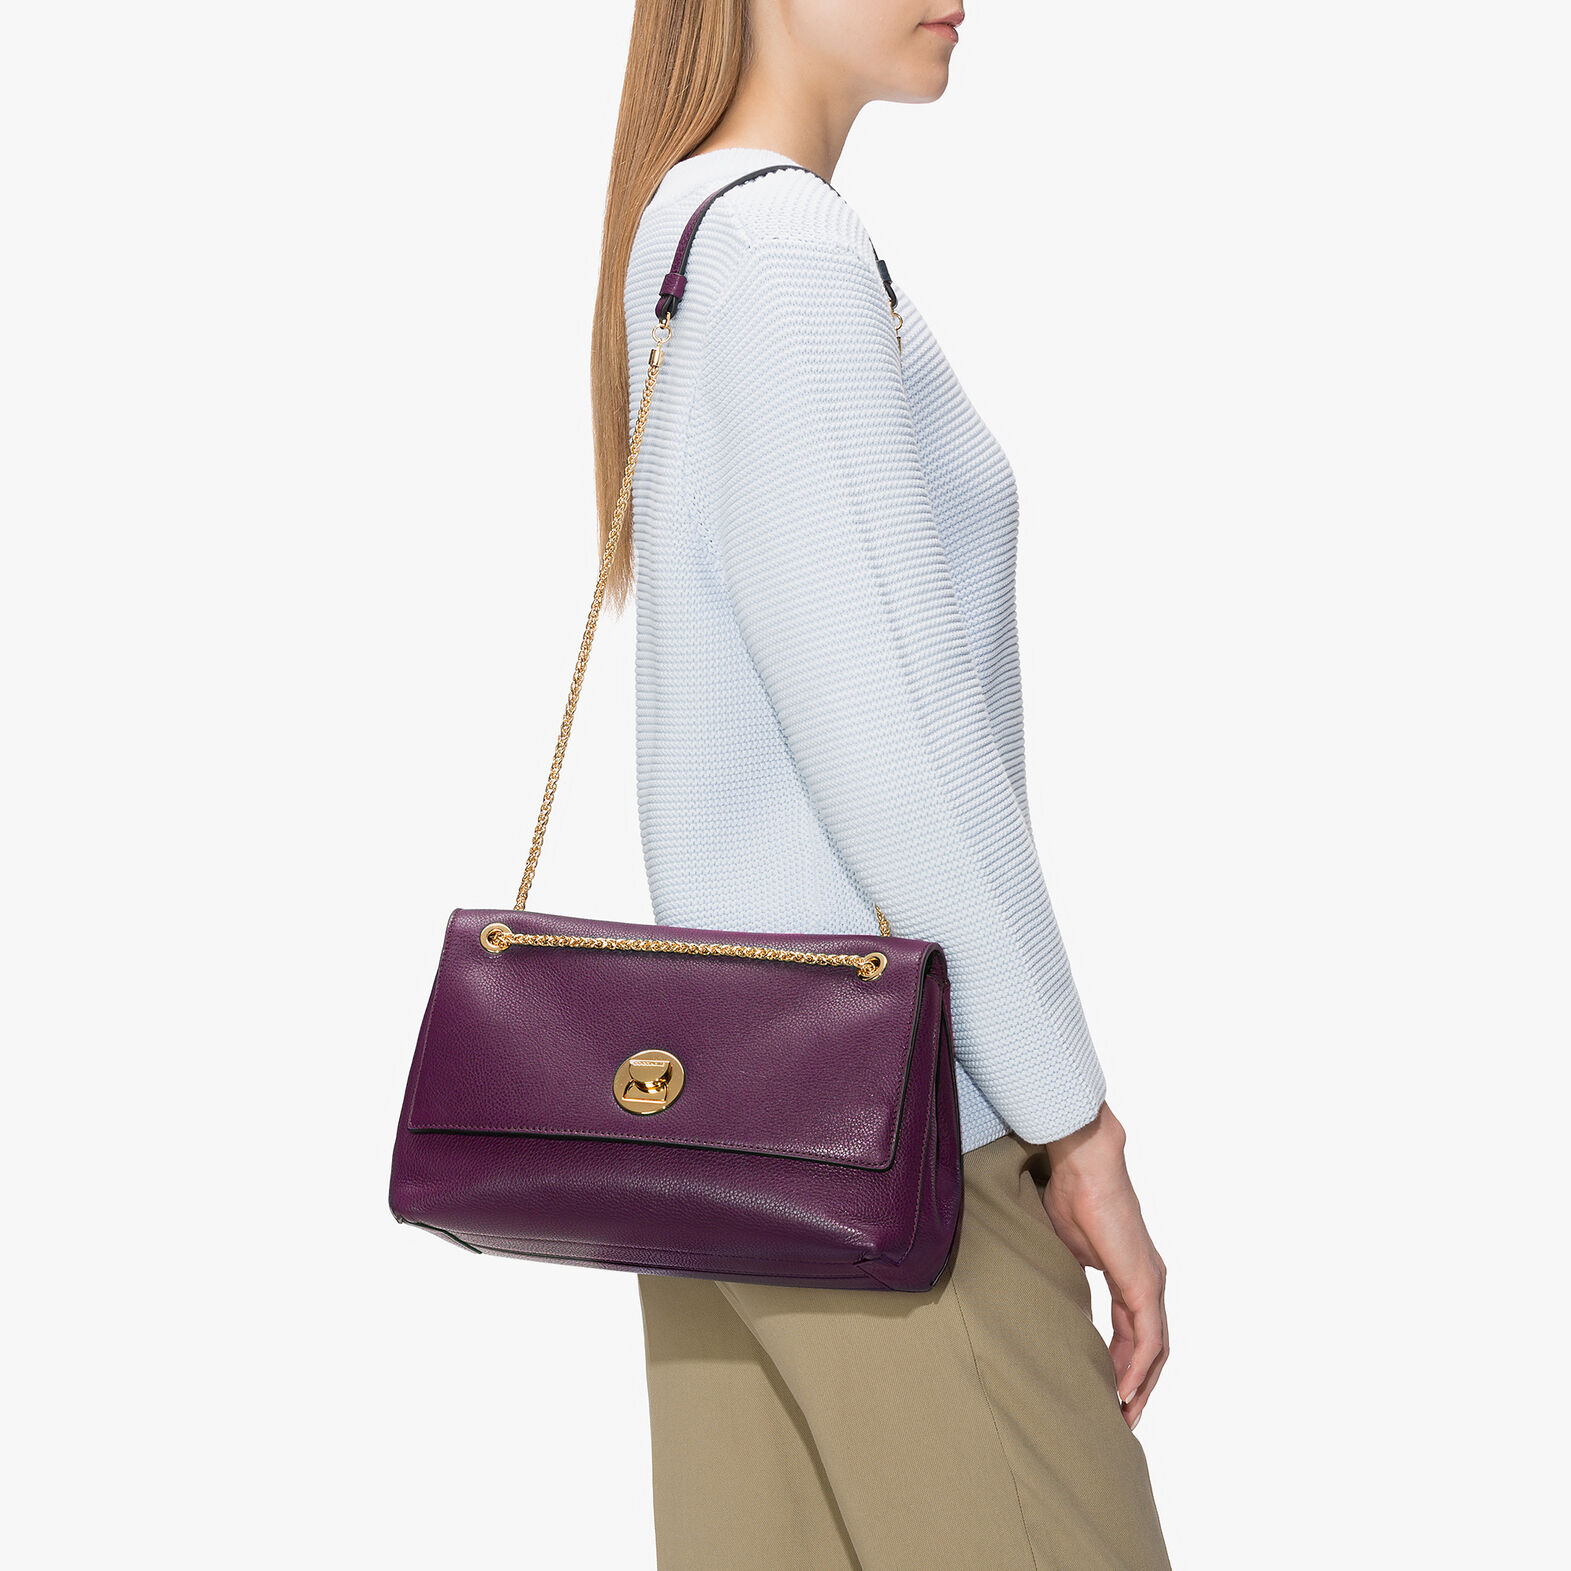 Liya leather bag with a single strap